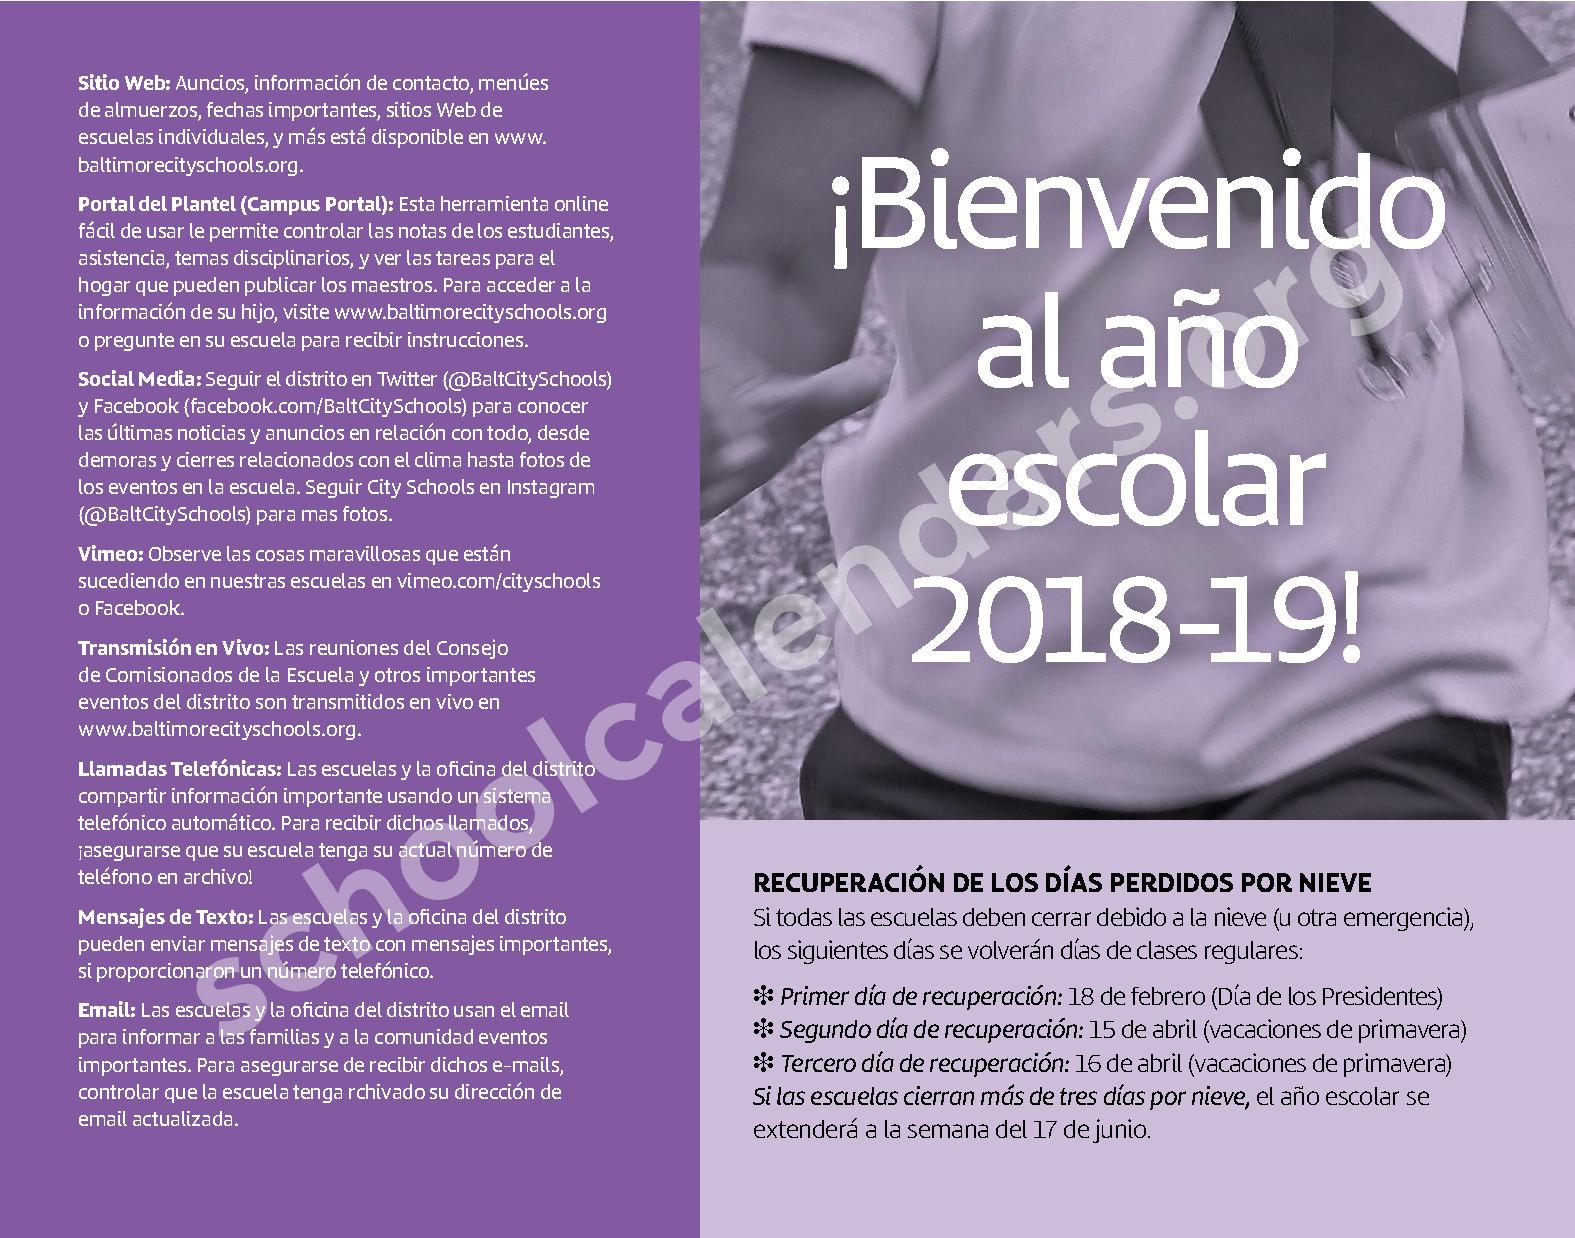 2018 - 2019 Calendario Escolar – Baltimore Polytechnic Institute – page 3